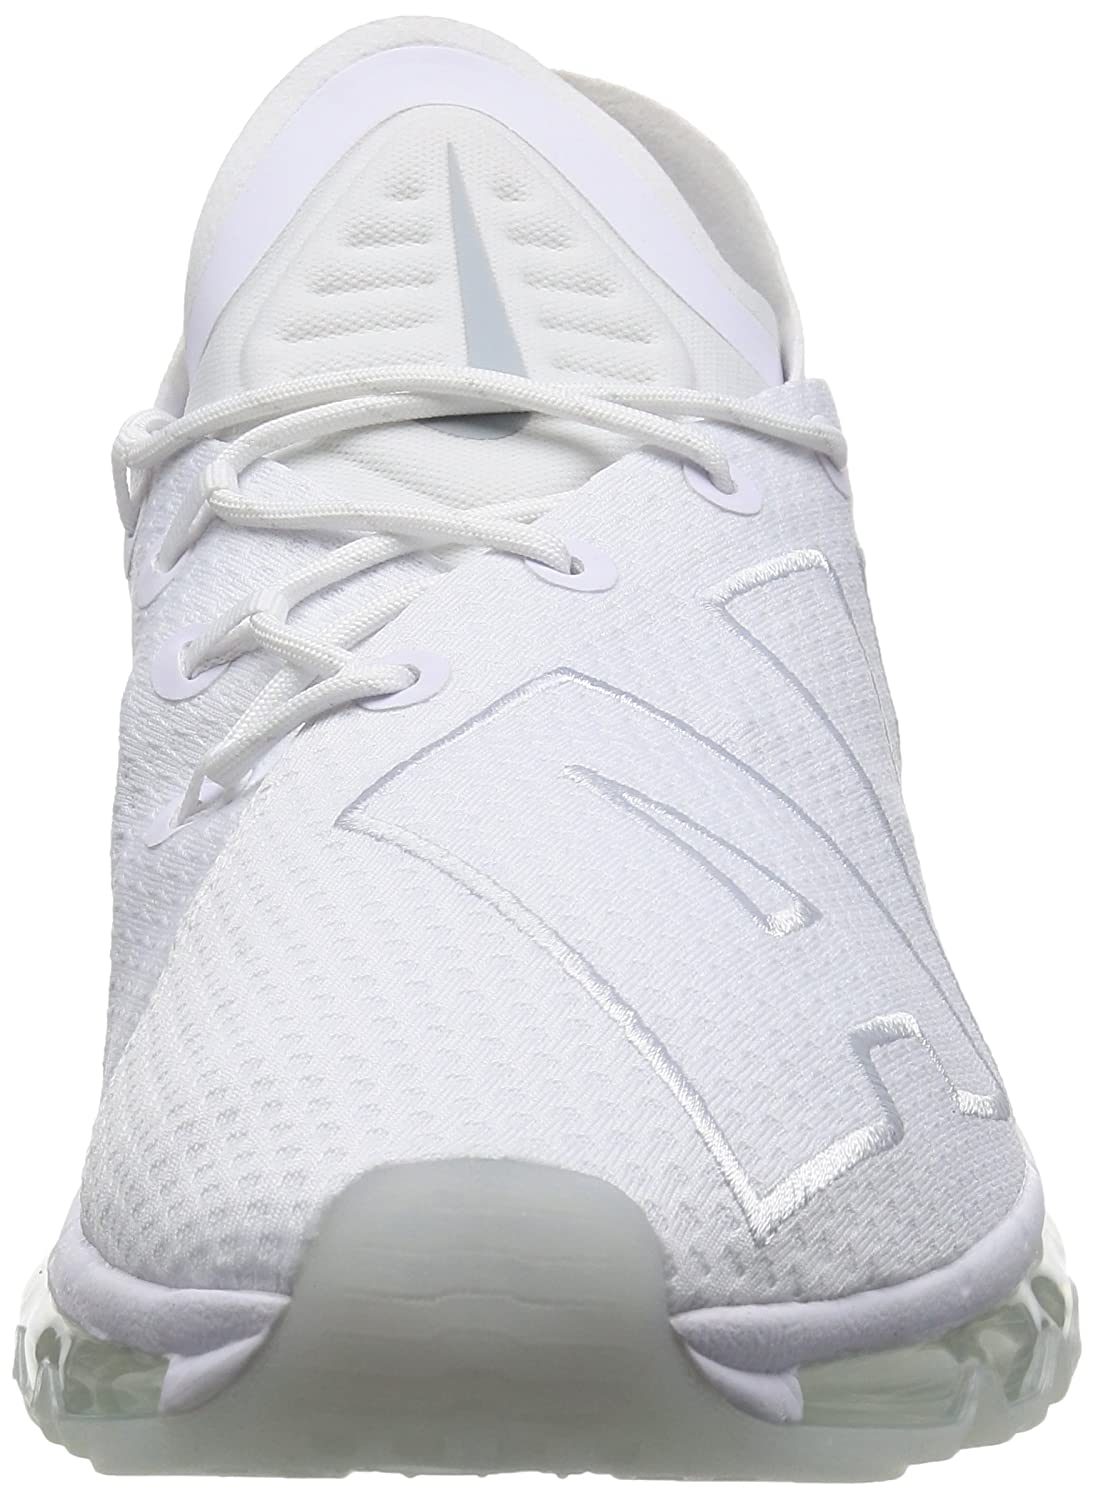 new arrival 68119 cae0c Nike Air Max Flair Men s Shoes  Amazon.co.uk  Shoes   Bags